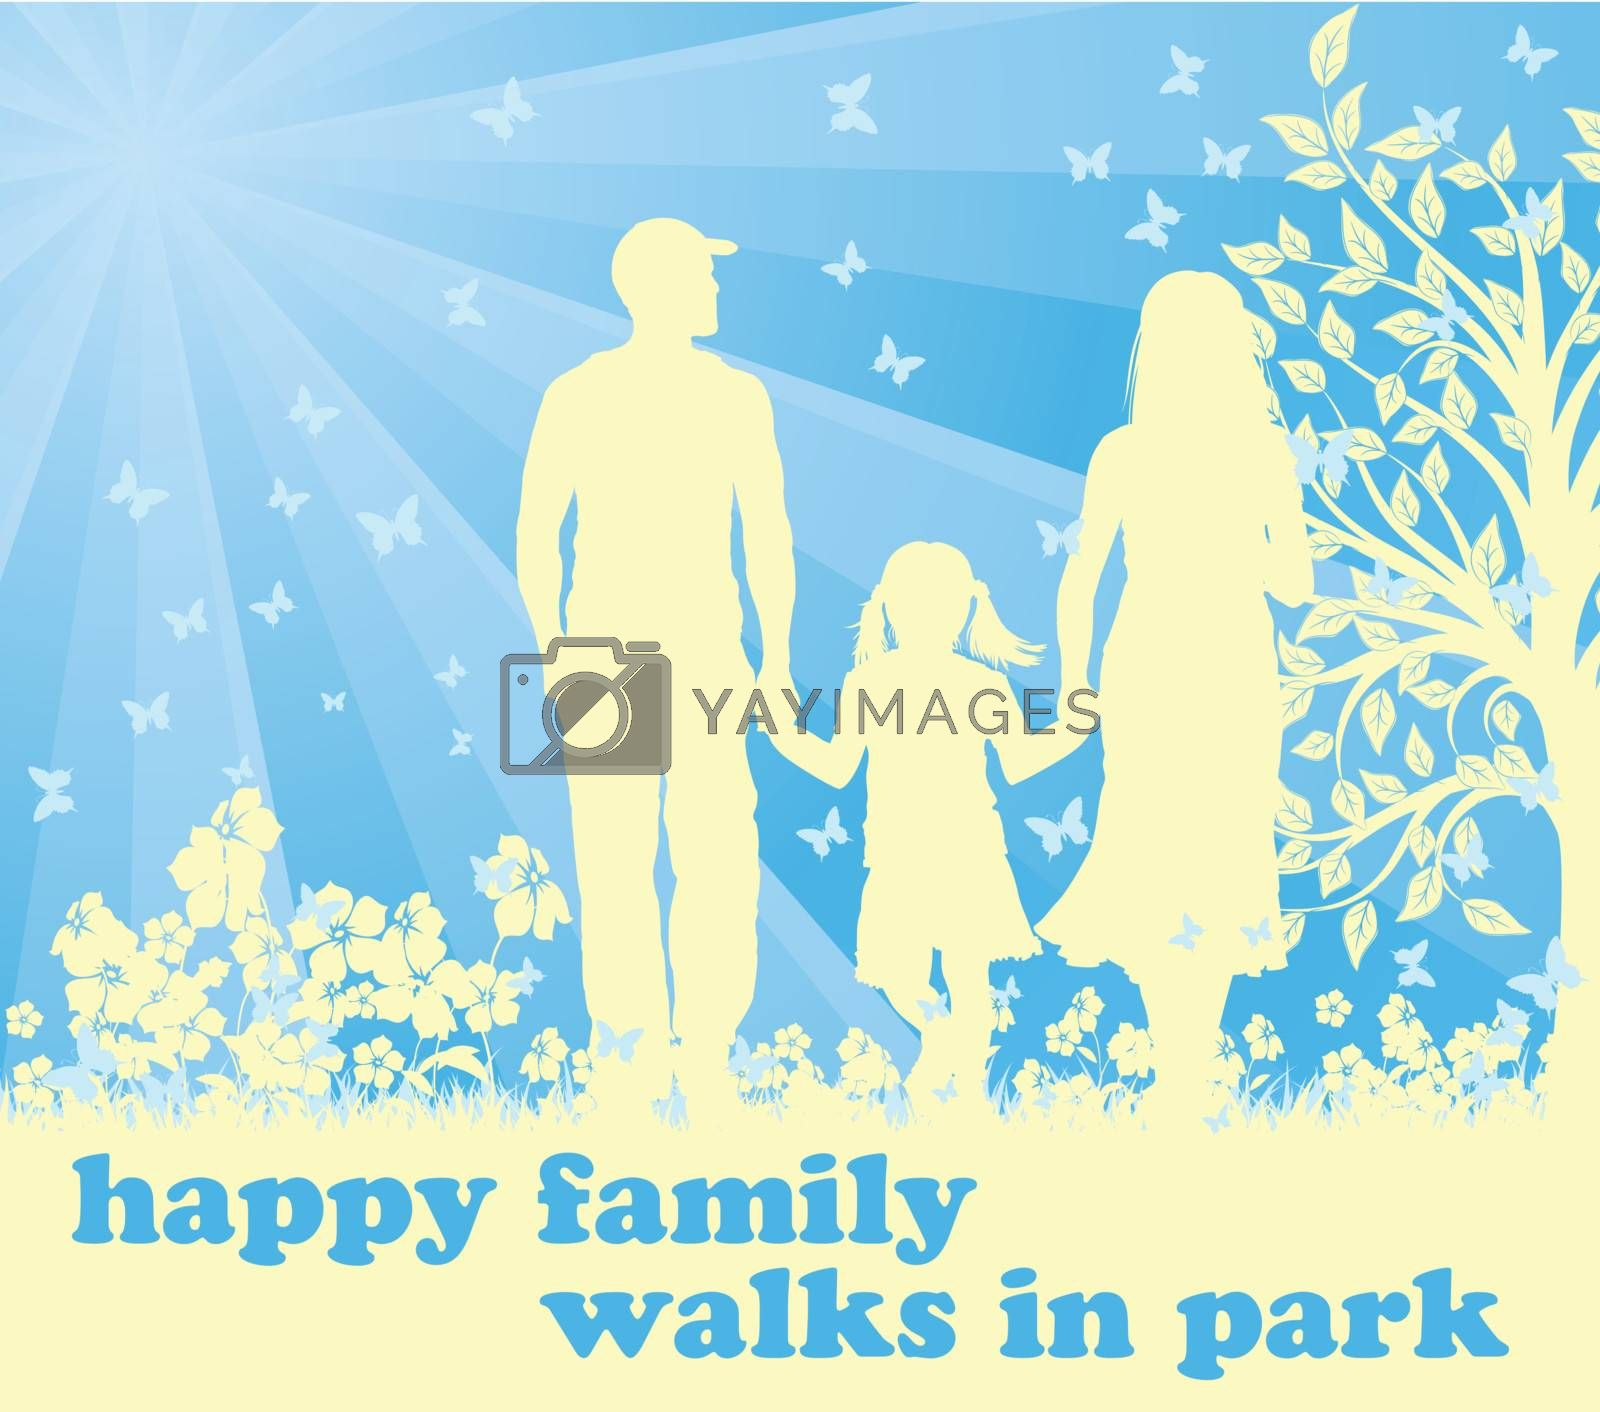 family silhouette walk on park EPS 10 vector file included